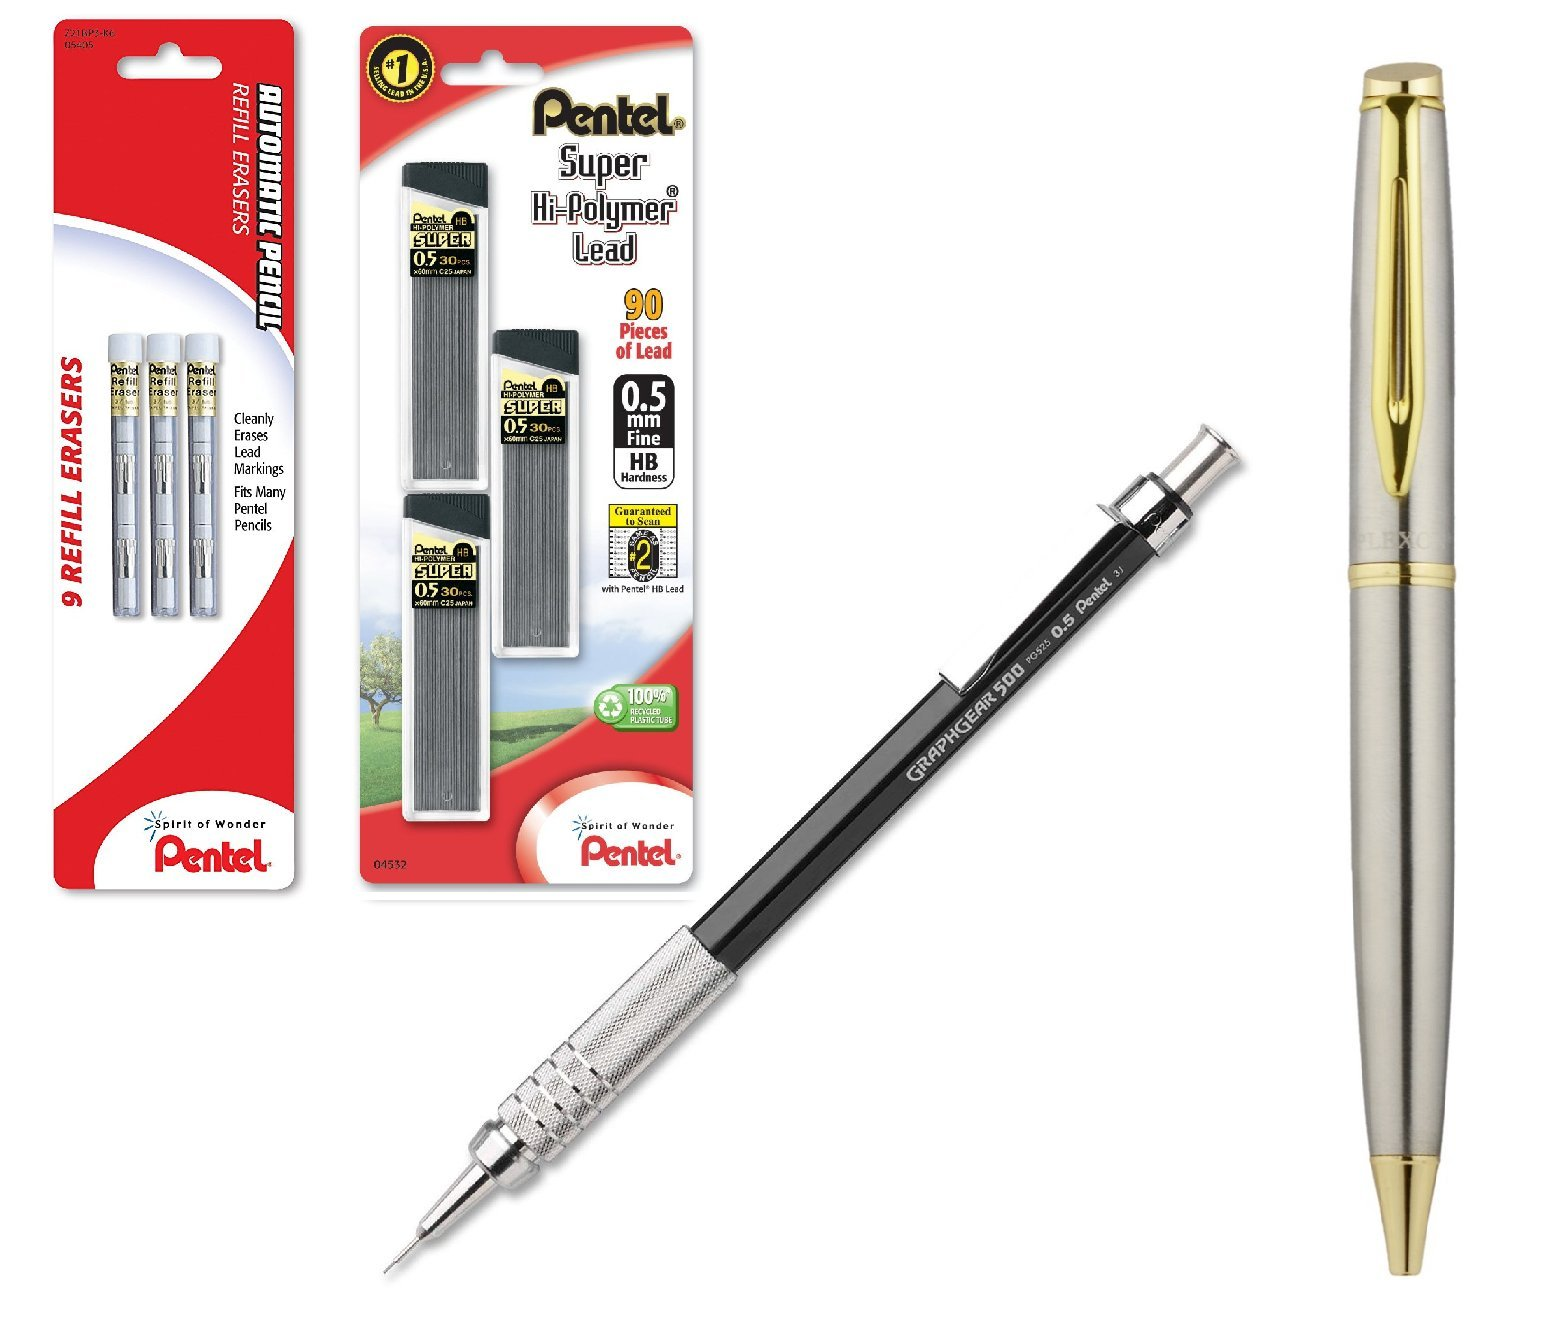 Pentel GraphGear 500 Automatic Drafting Pencil Black with .5mm Lead Refils and Z21 Eraser Refills (Bundle)